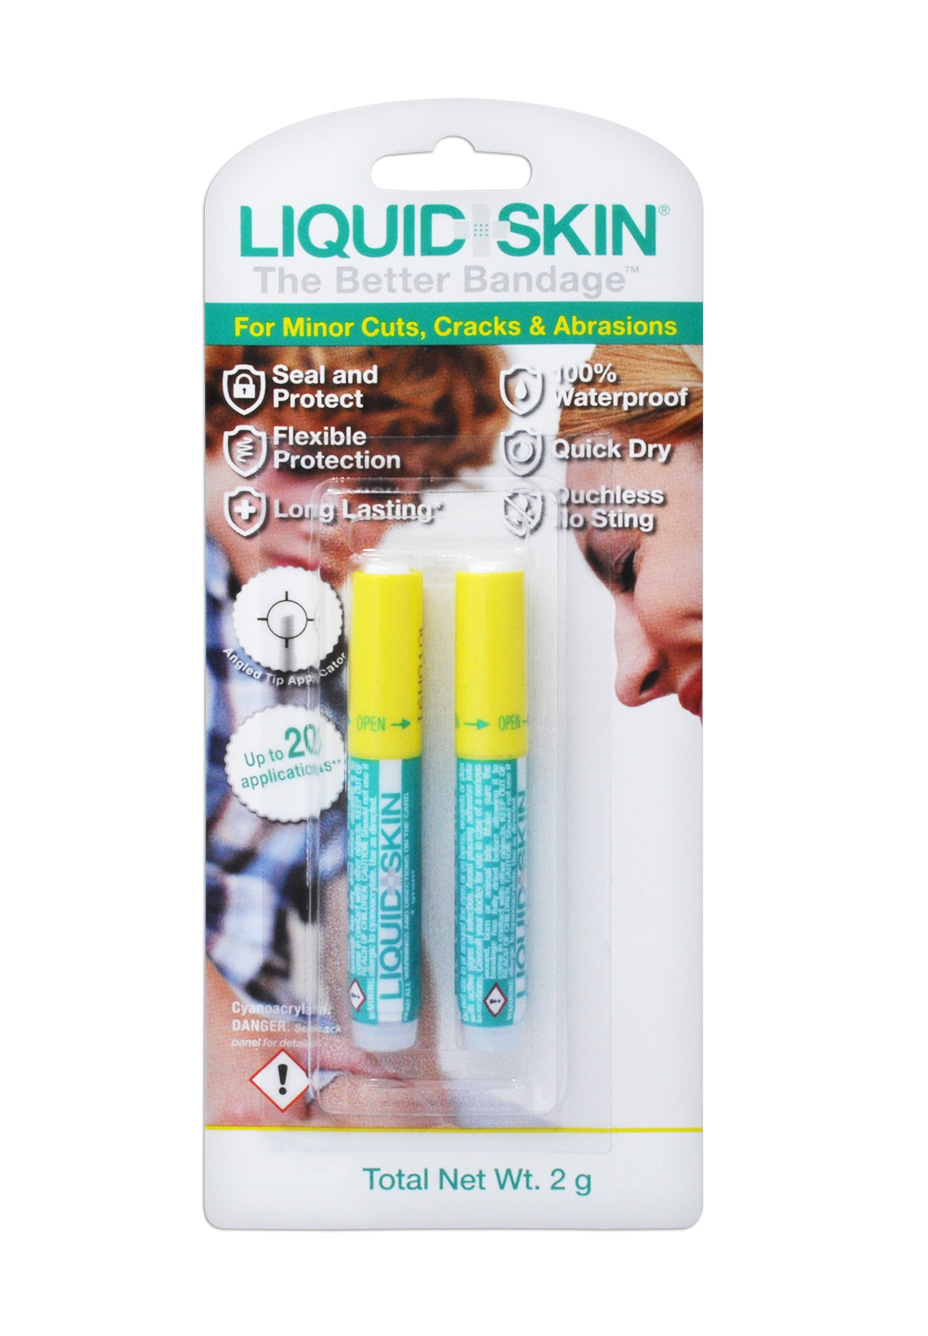 LiquidSkin® Package